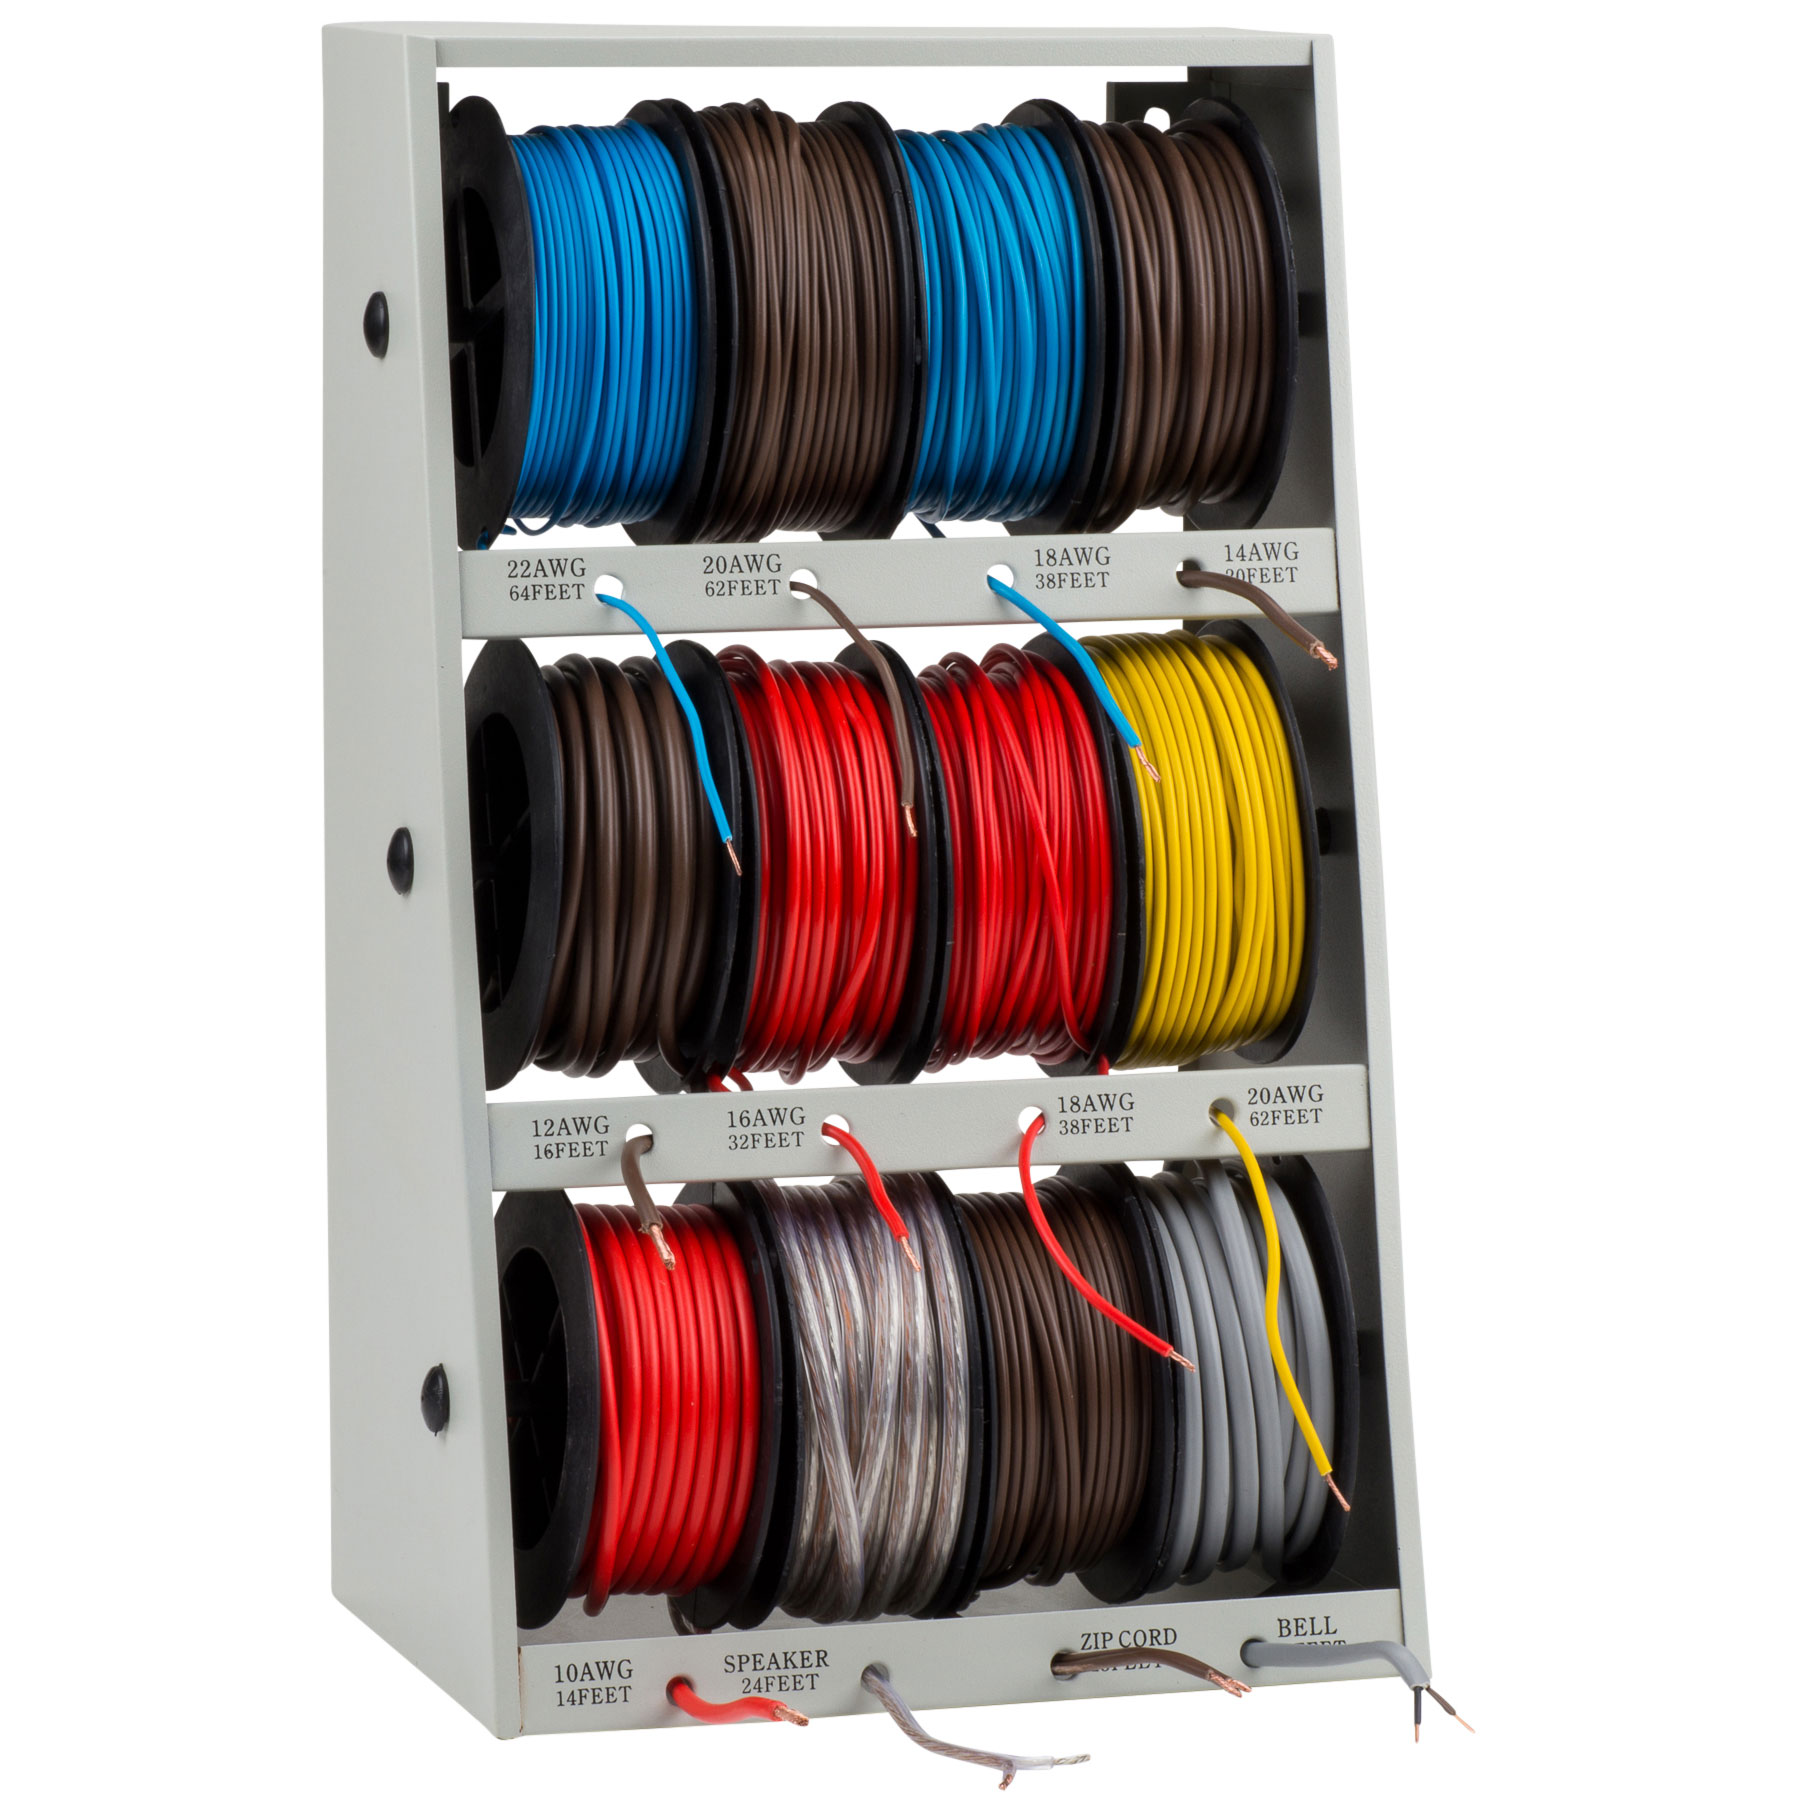 Elec Wire Rack Center Audio Wiring Electrical Cable Racks Info U2022 Rh Datagrind Co Digital Size